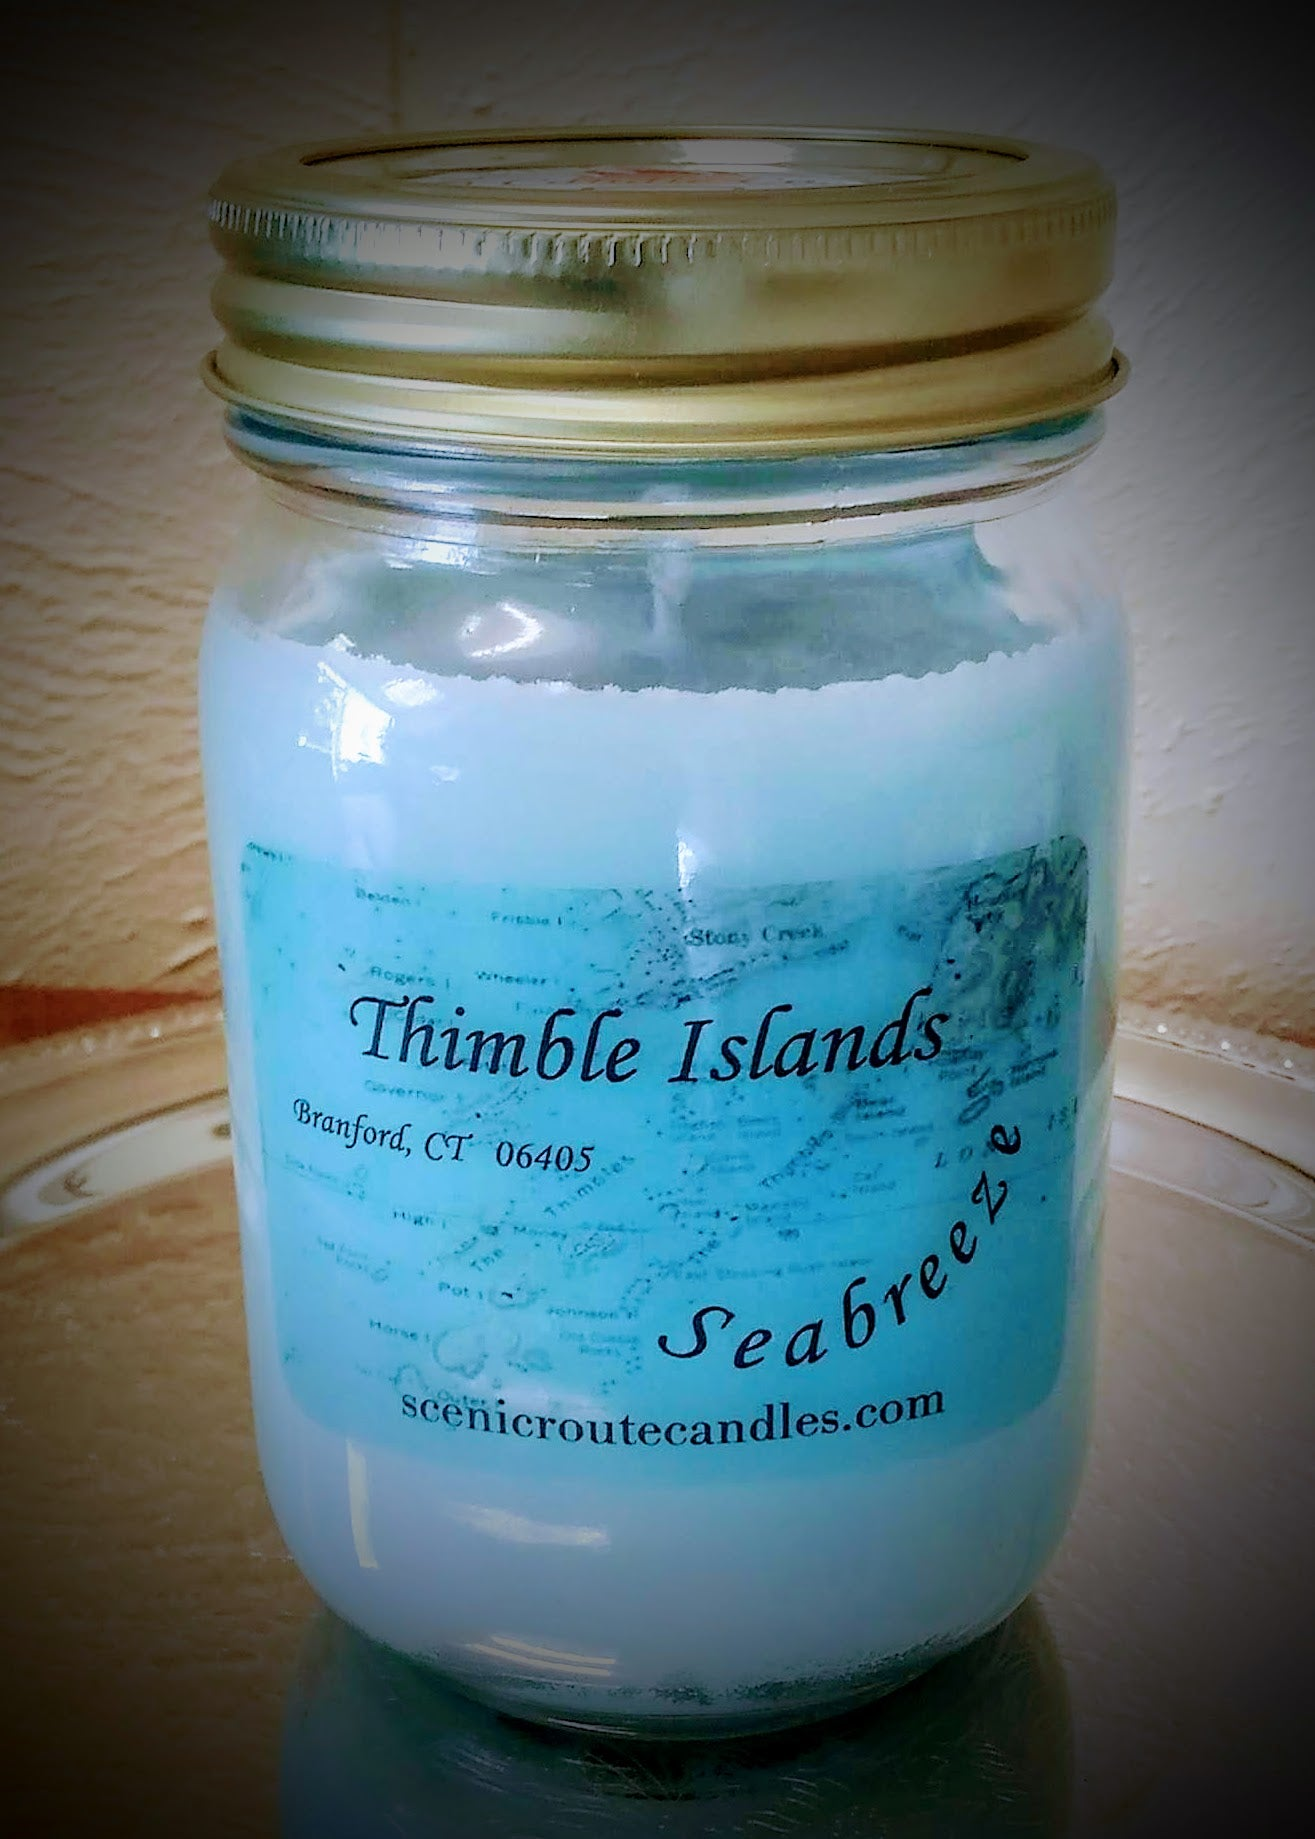 Thimble Islands Seabreeze